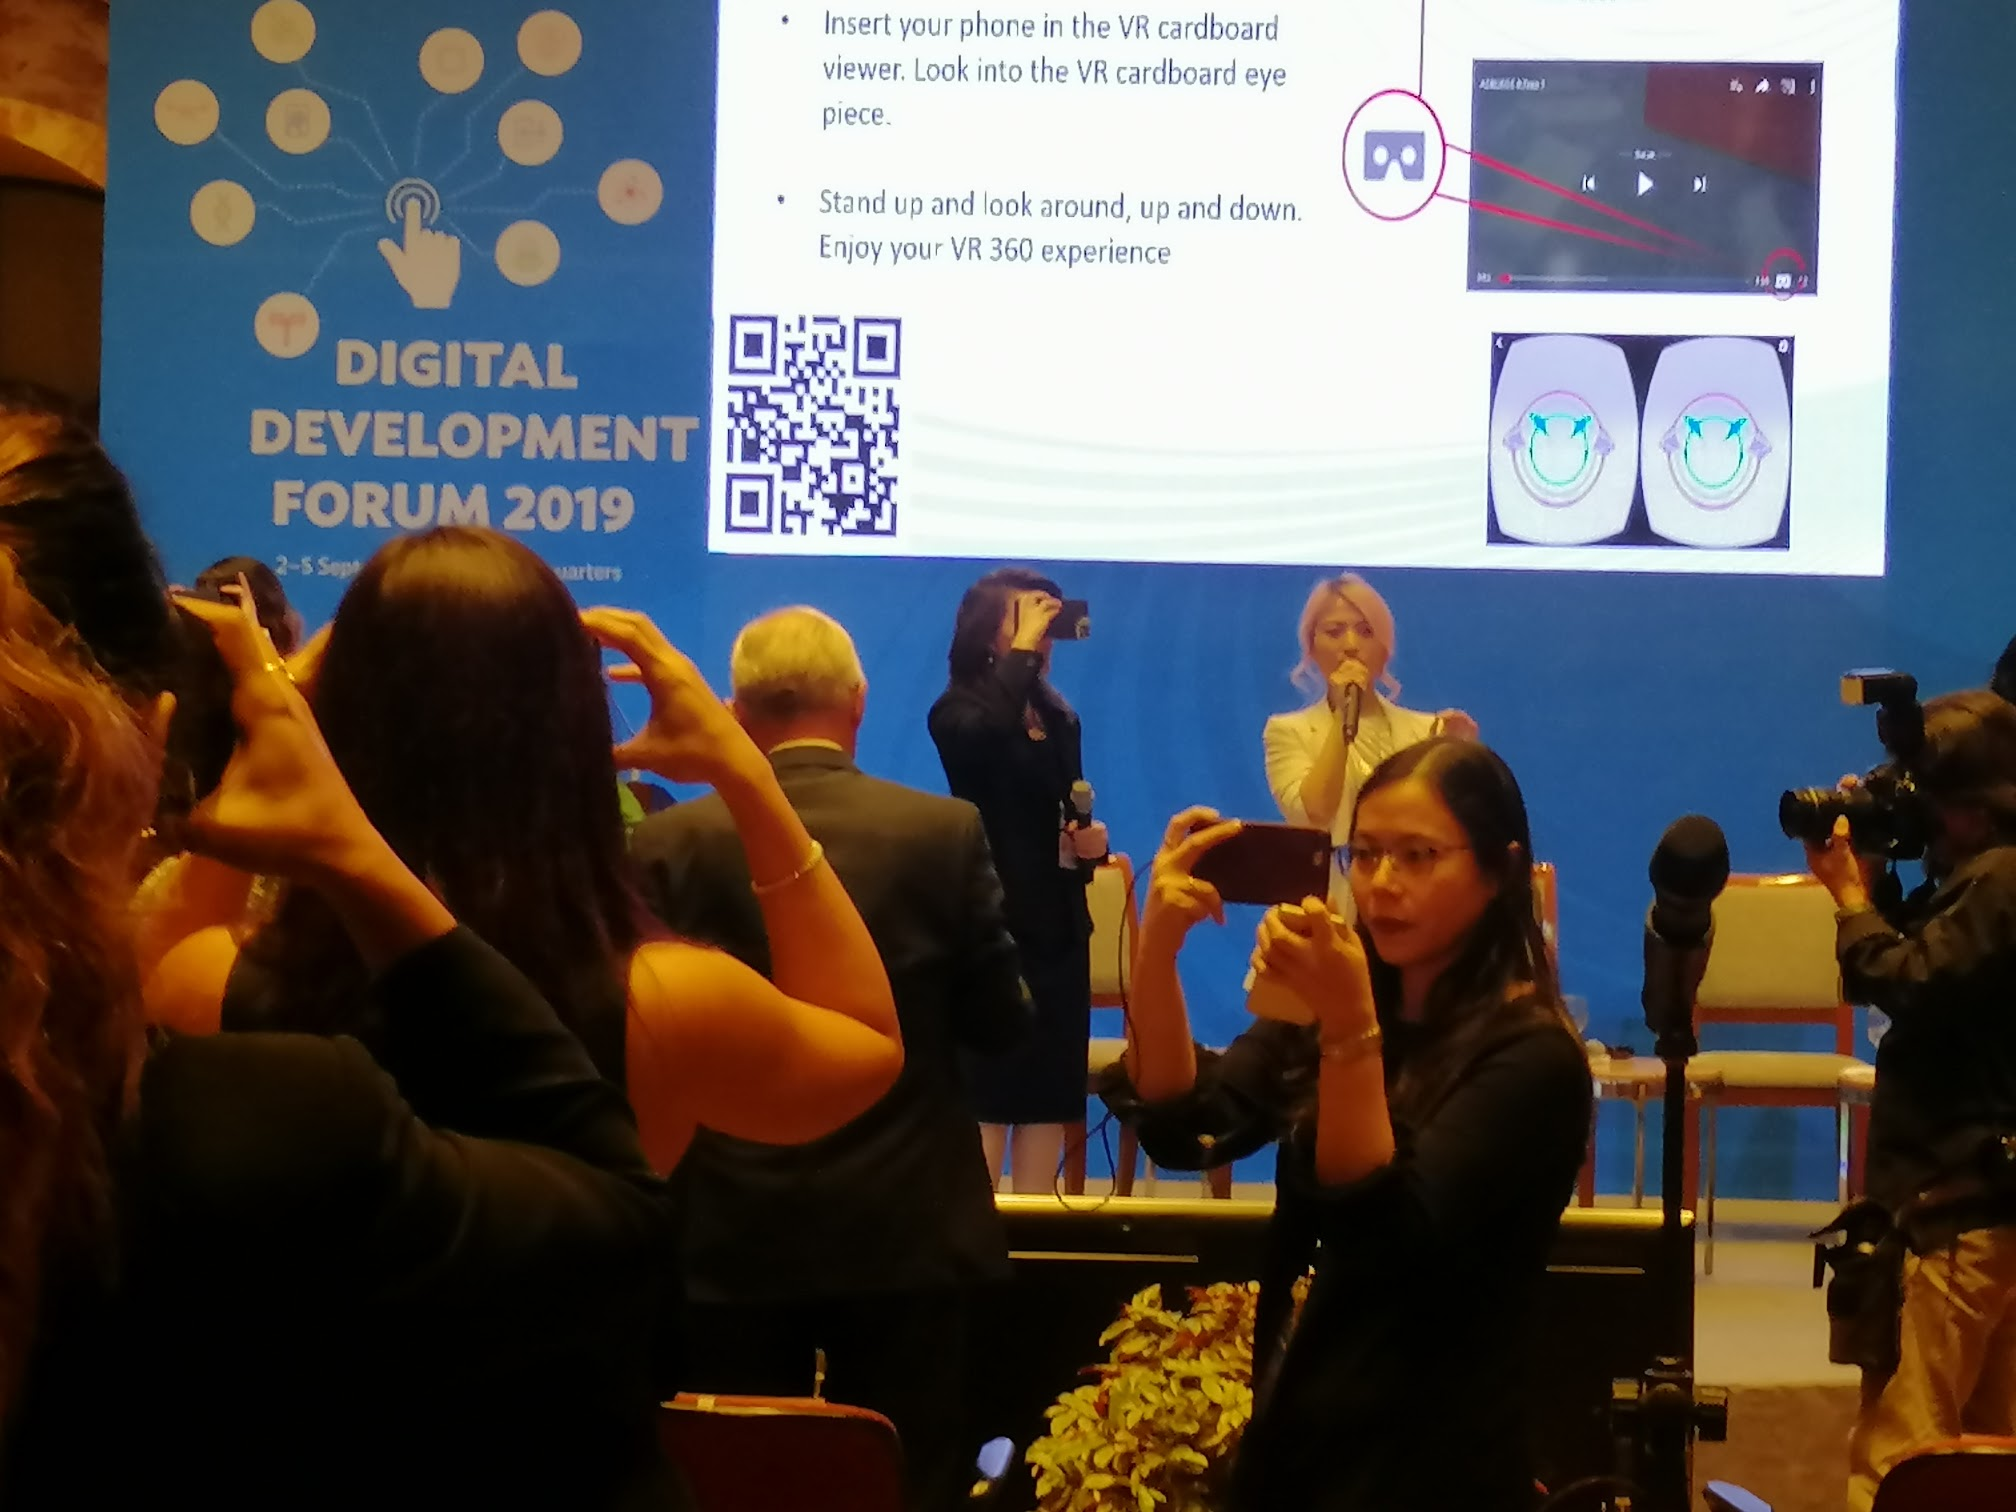 10:23 a.m. - Attendees get a glimpse of ADB's Future in Virtual Reality!